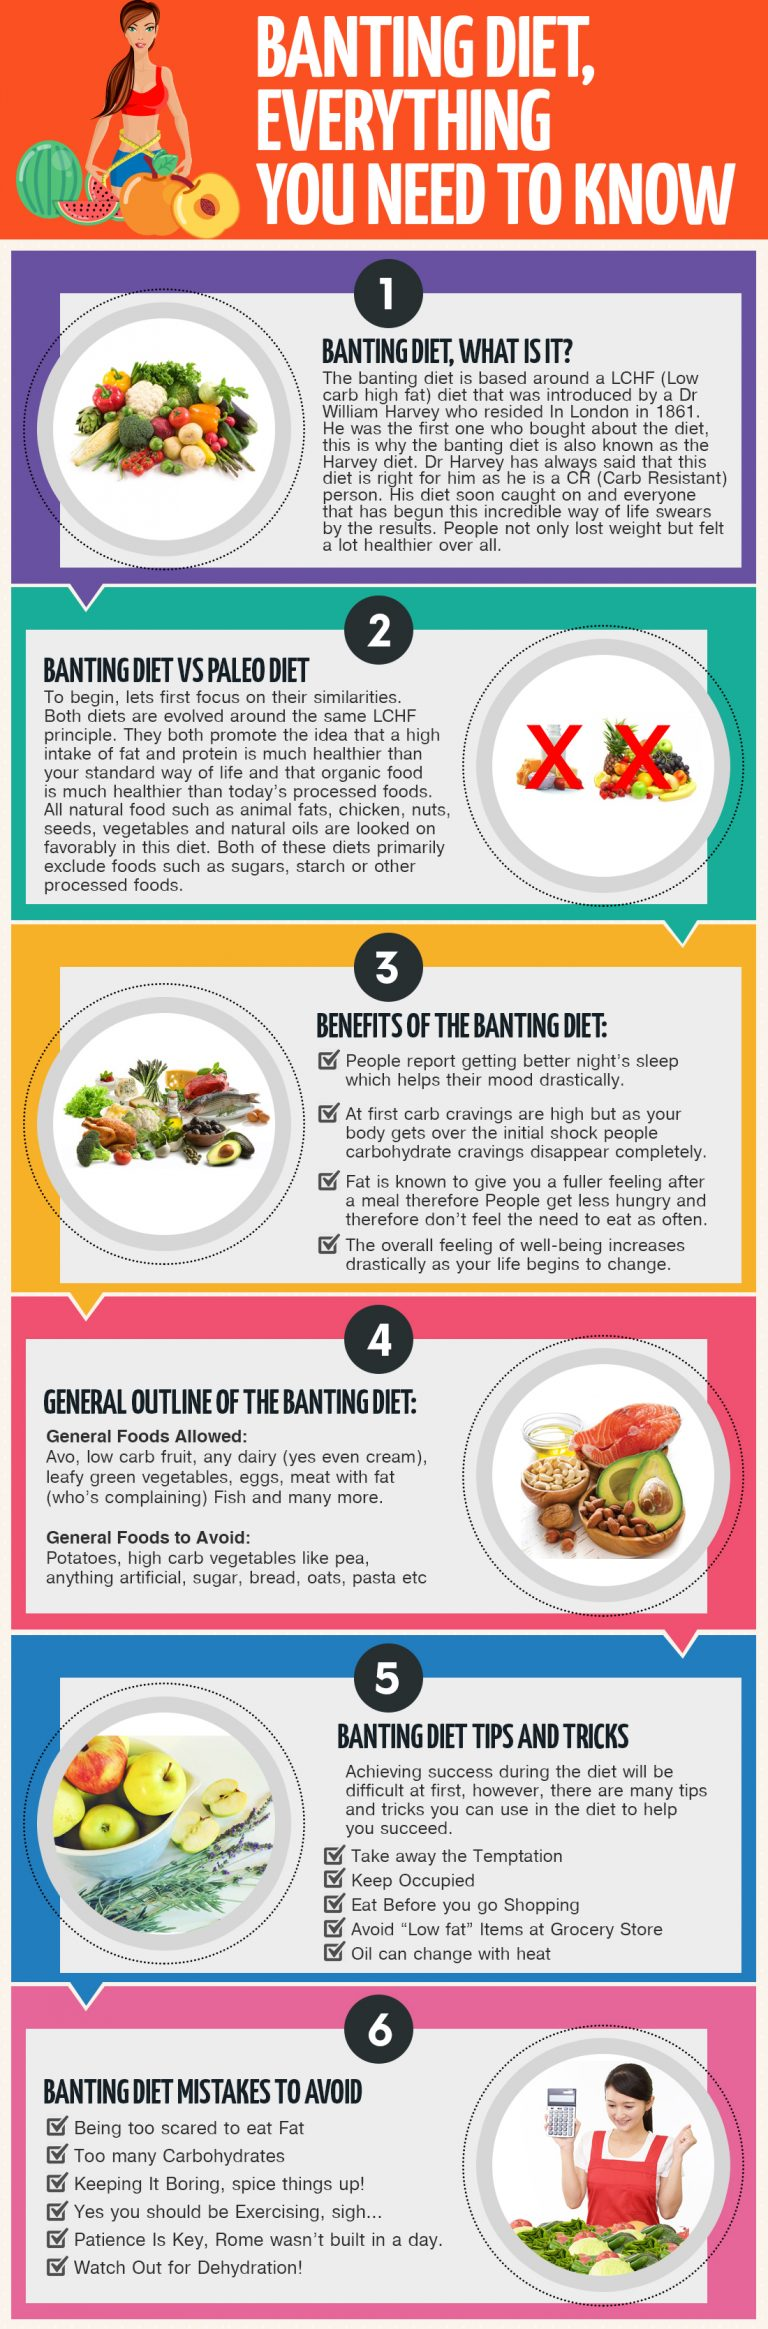 how low should you go on a diet